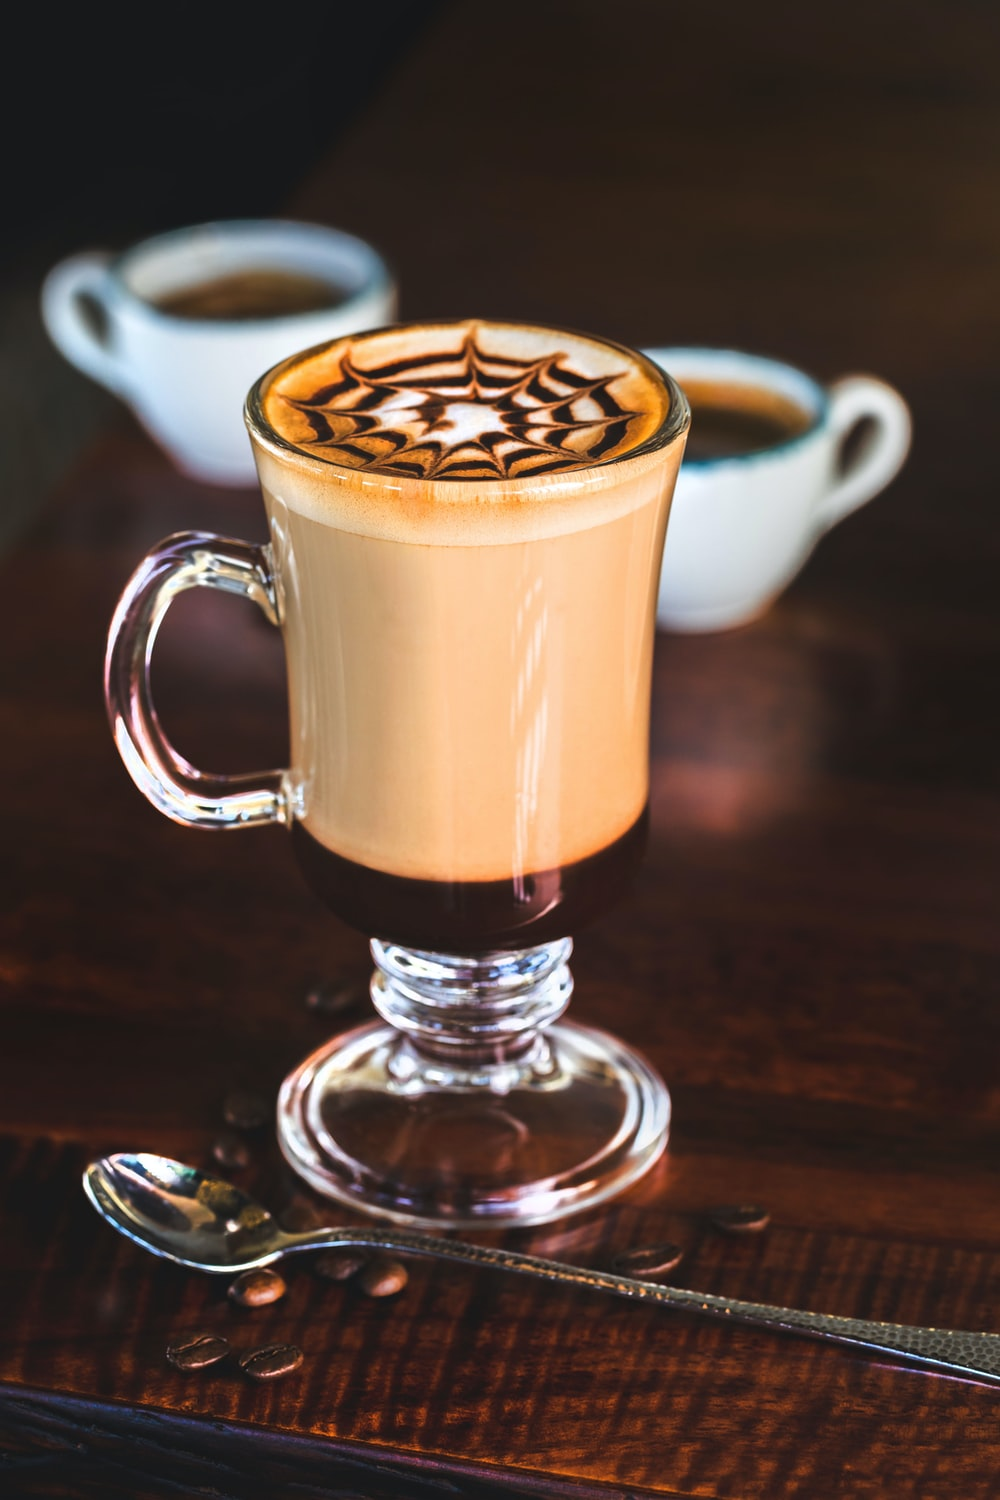 food photography of coffee latte next to stainless steel spoon